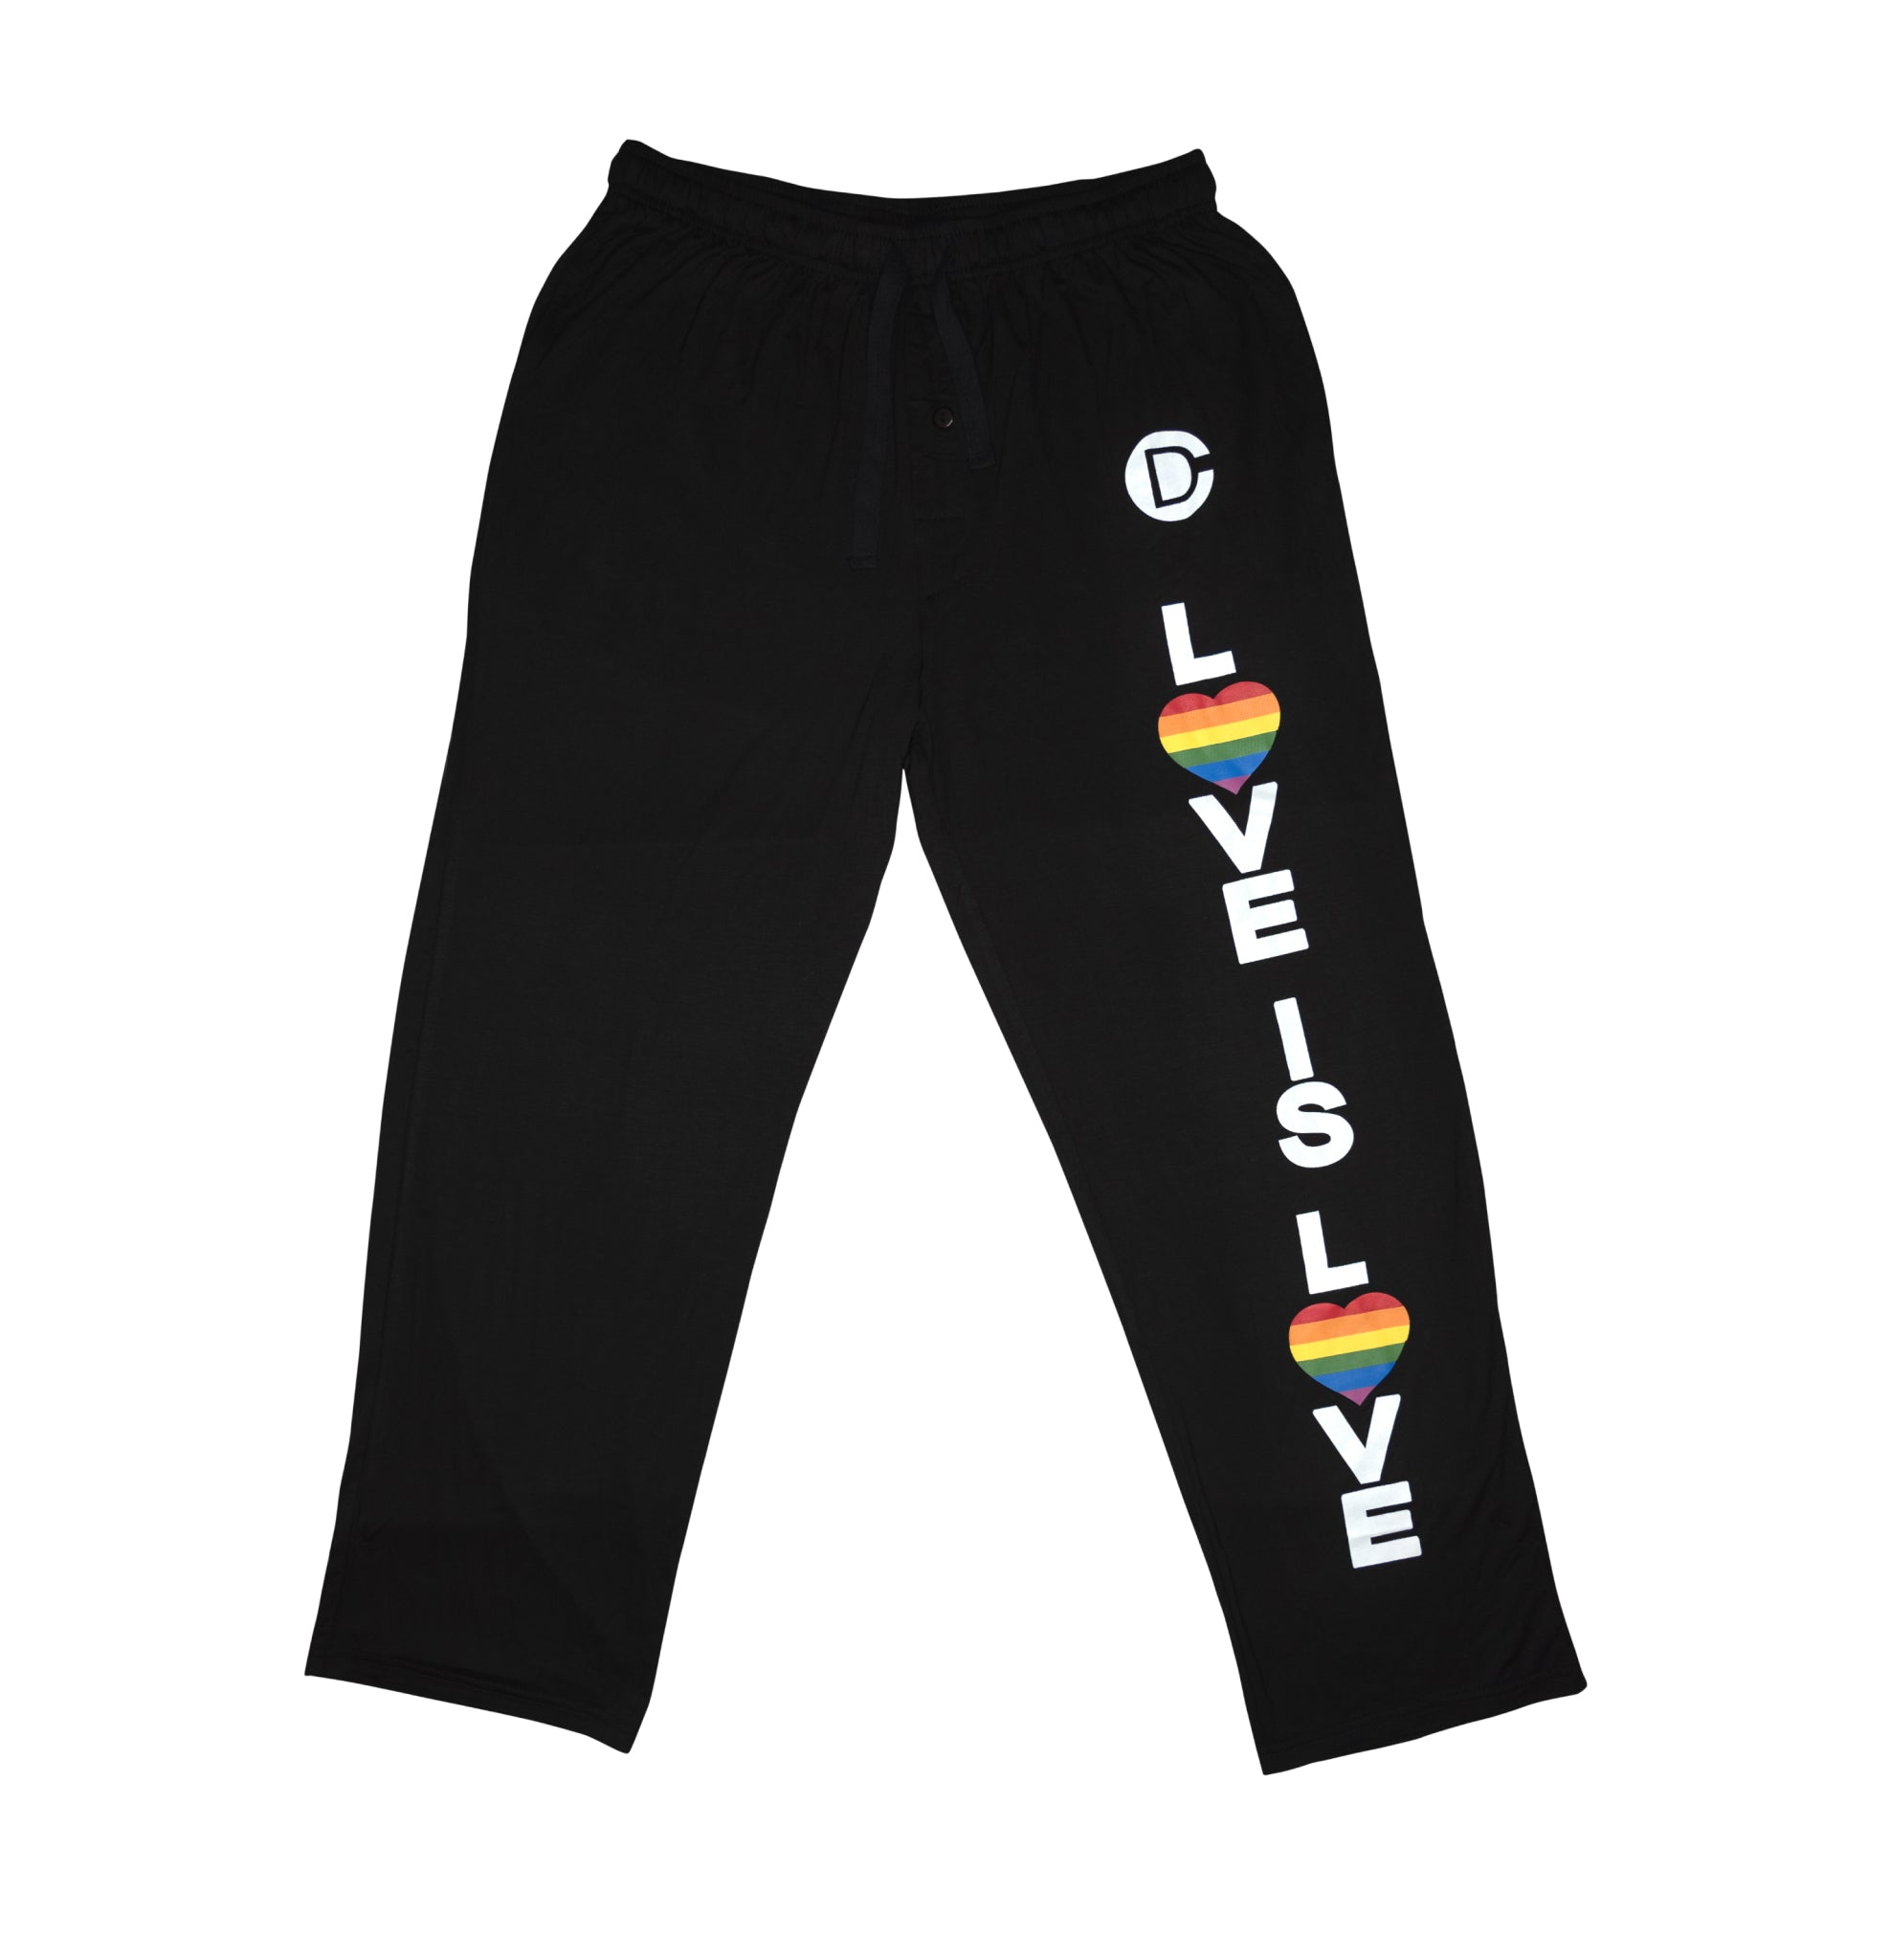 Men & Womens Love is Love Traditional Pajama Bottoms with Pockets by Casual Daddy - Casual Daddy